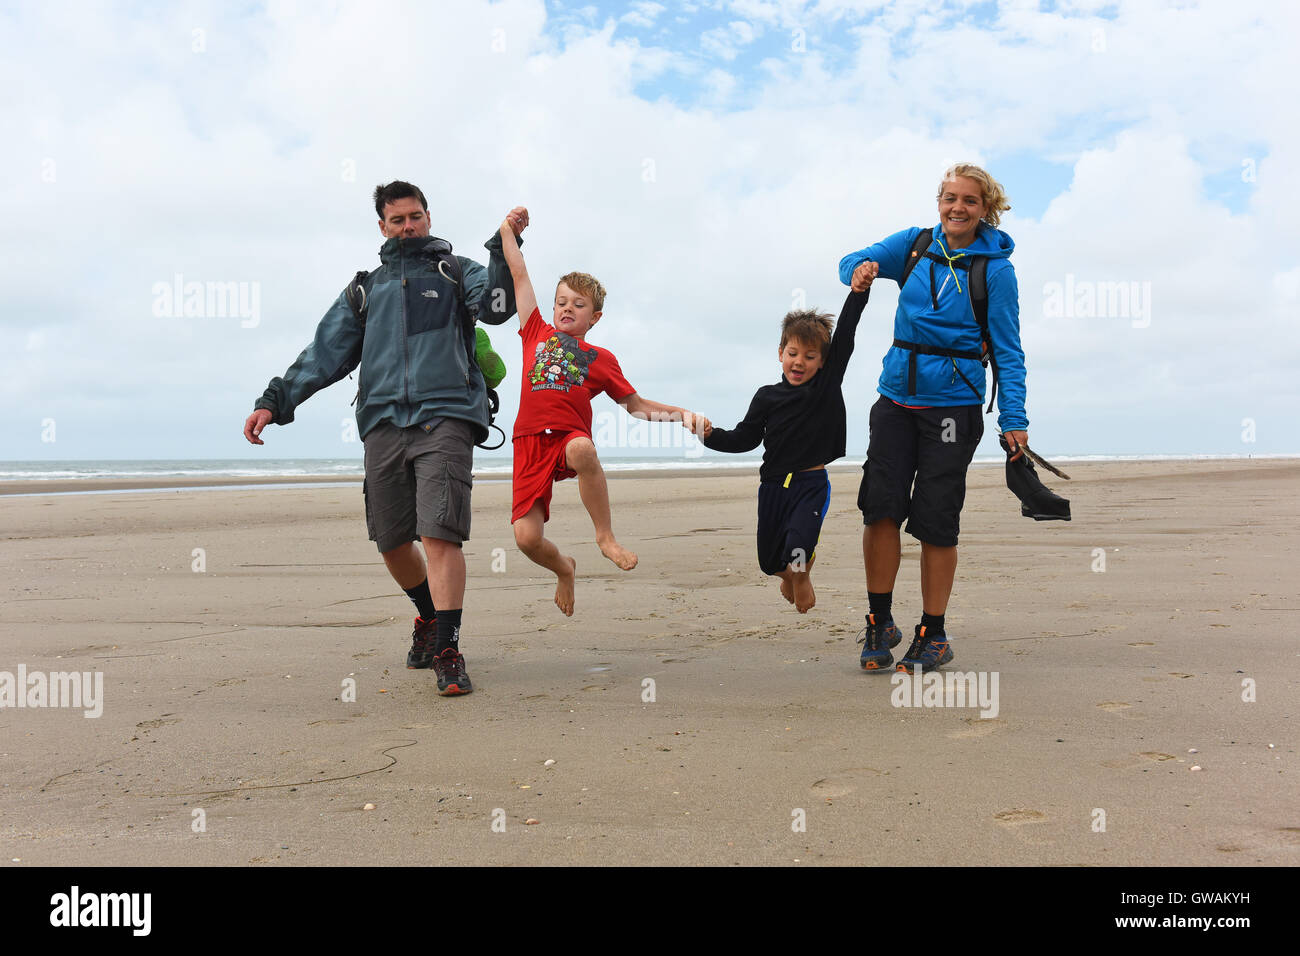 Family on the beach at Tywyn in Mid Wales UK - Stock Image